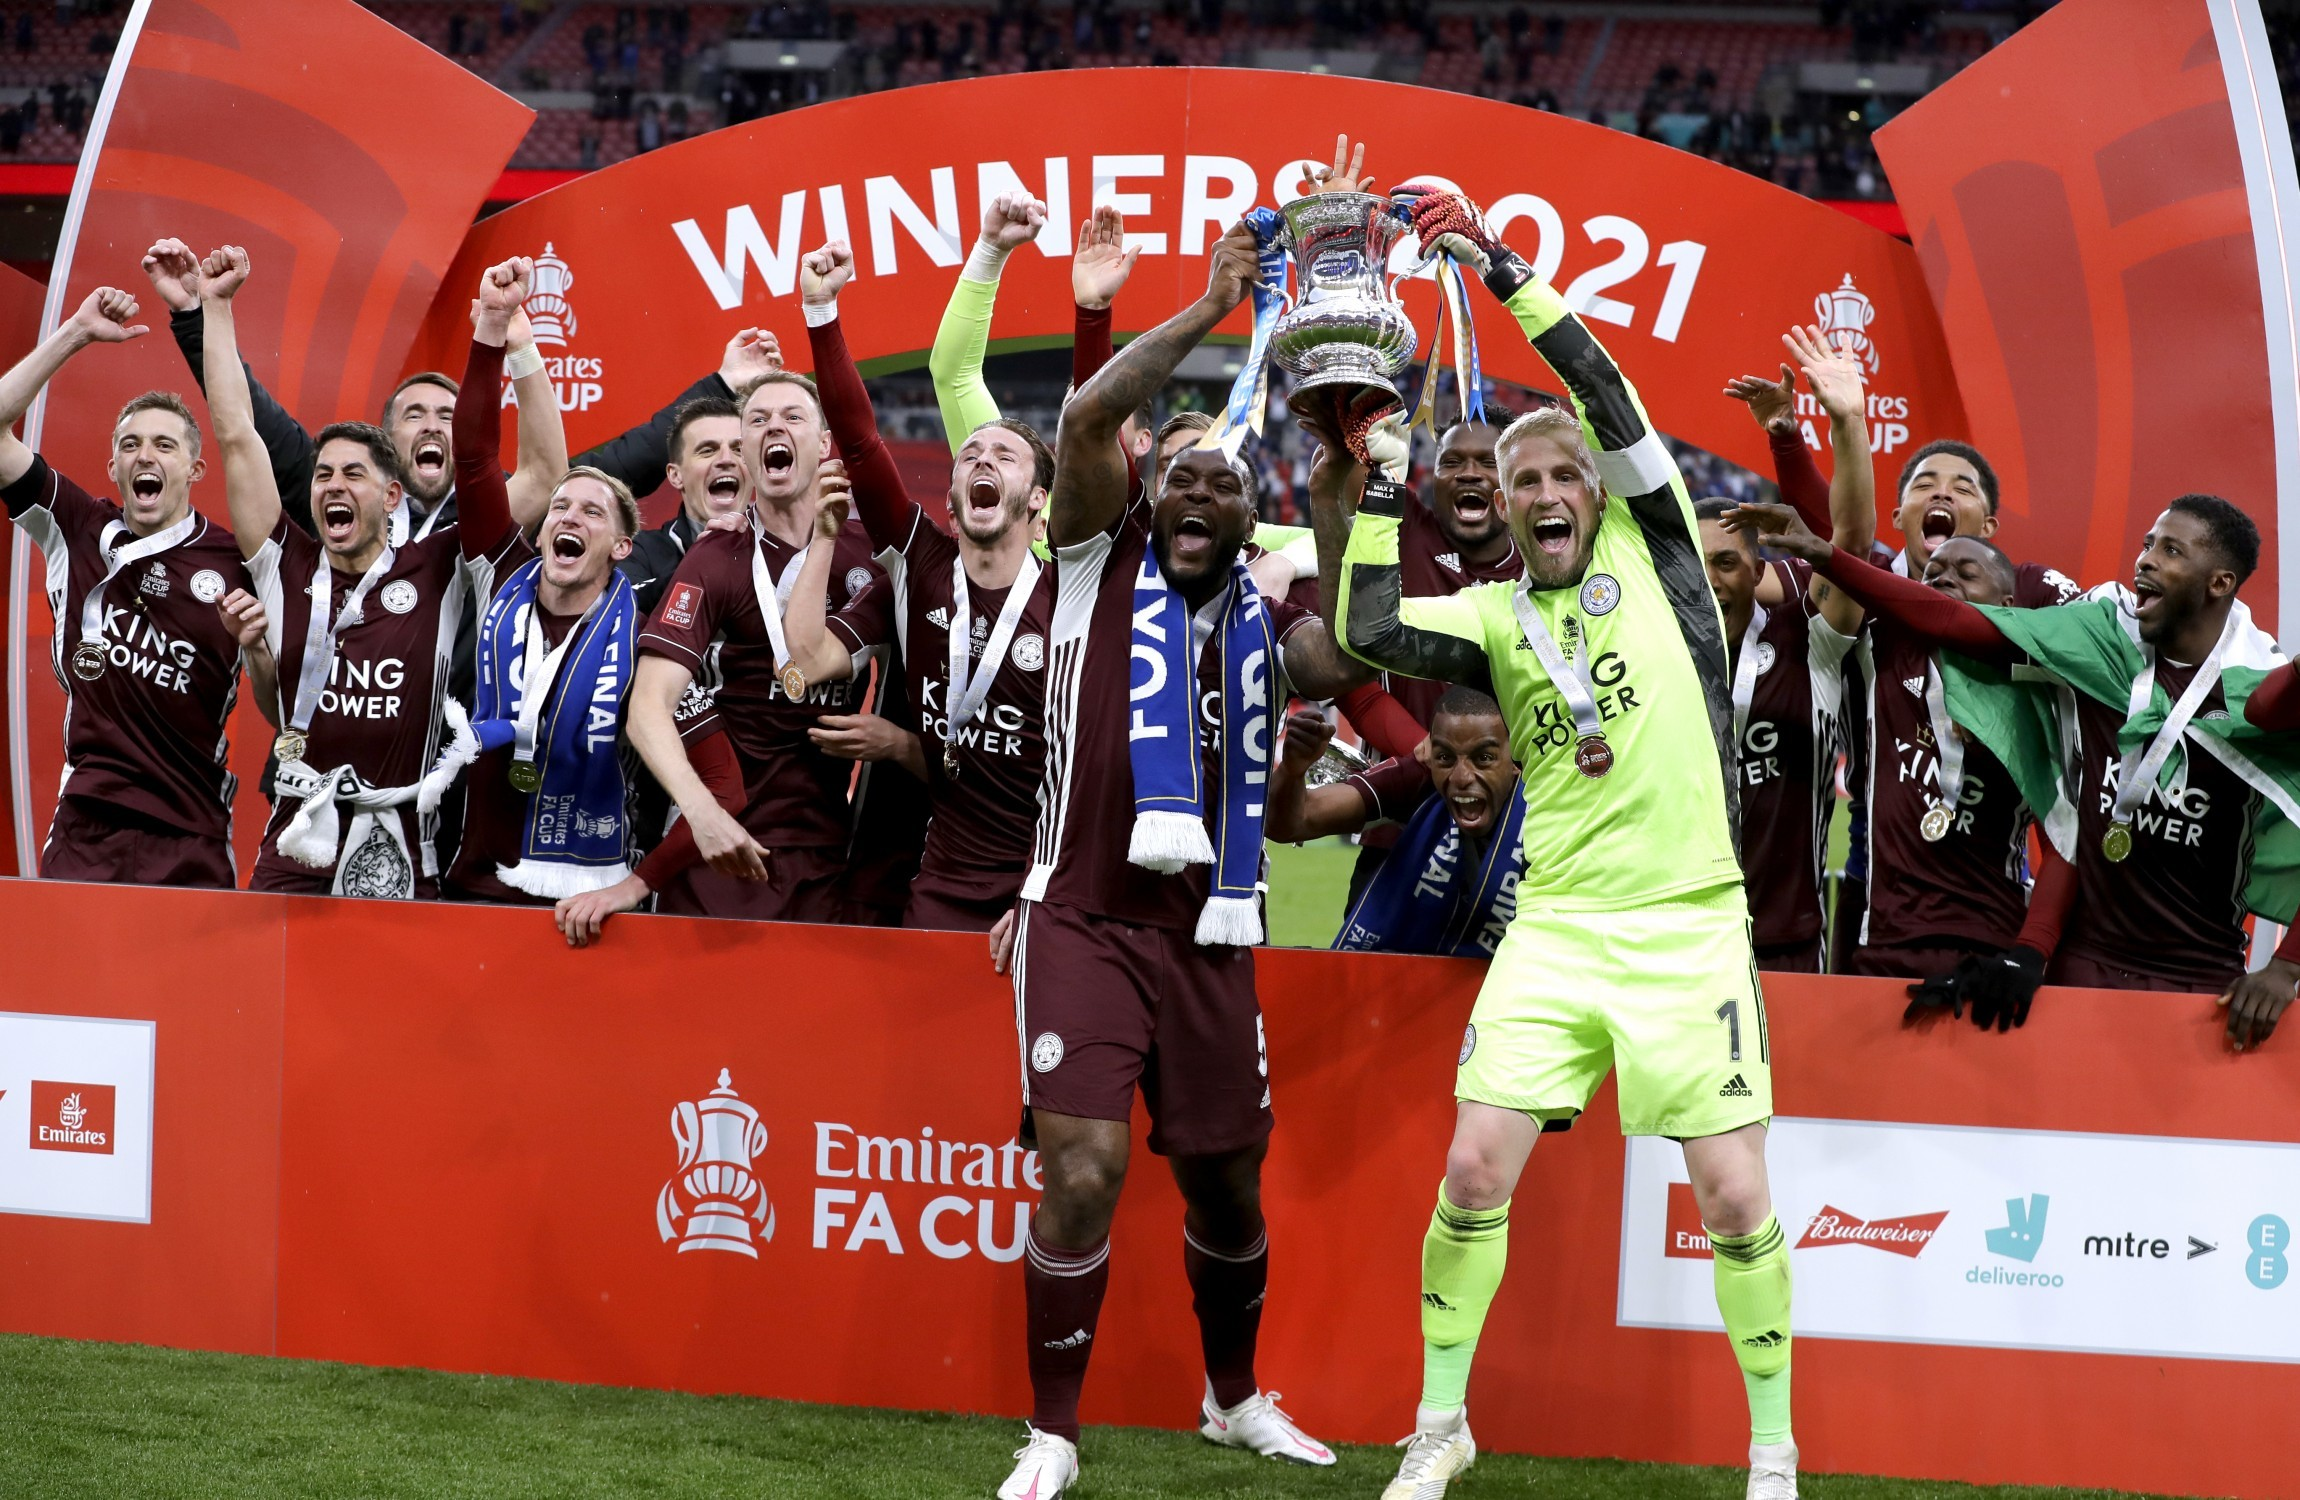 Leicester City lift FA Cup for the first time after Tielemans' thunderbolt seals victory over Chelsea